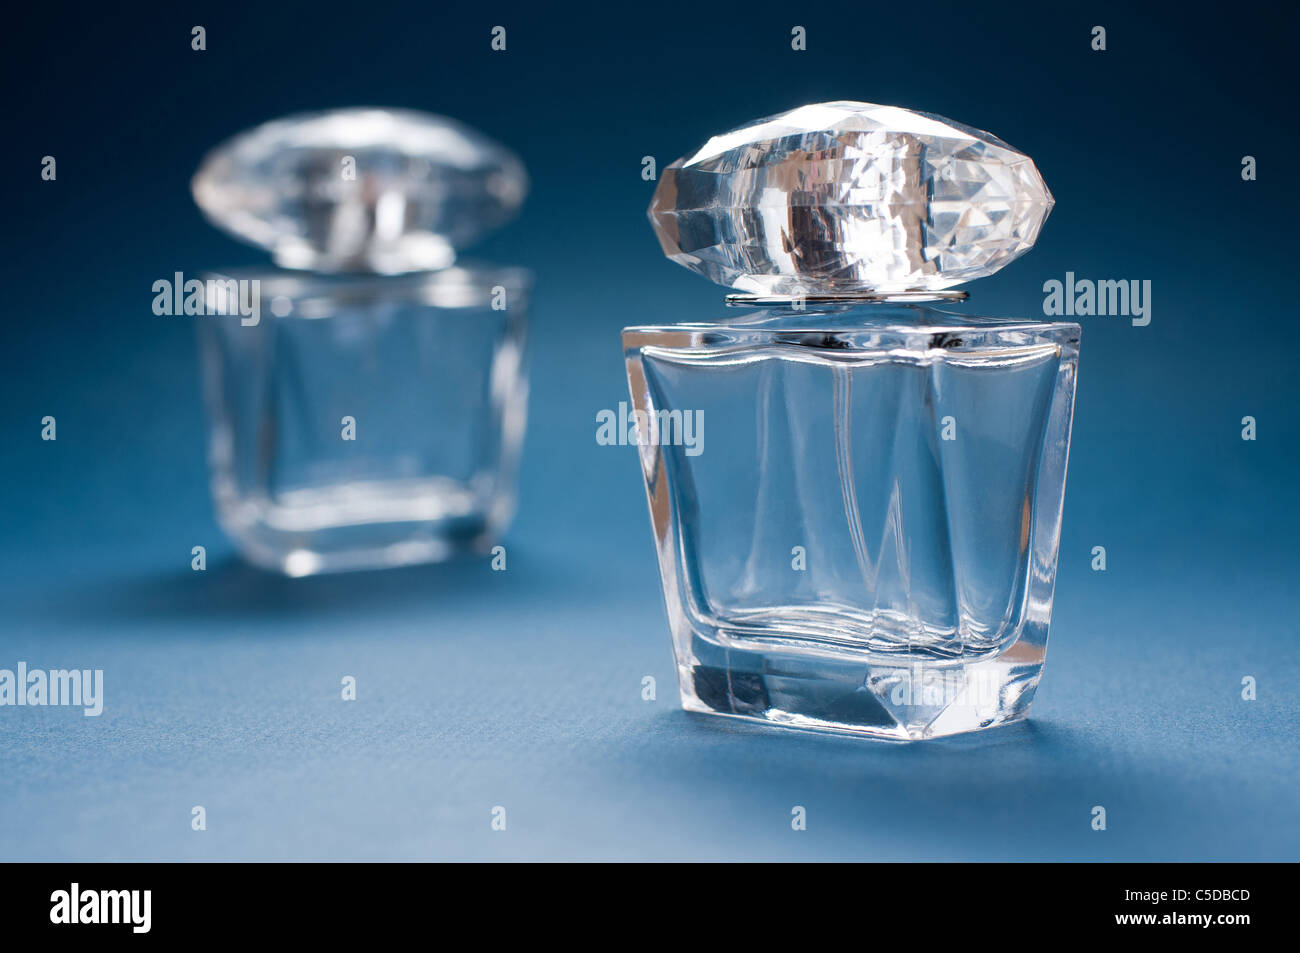 Fragrance Bottles, two items, transparent glass mini bottles with gaps - Stock Image